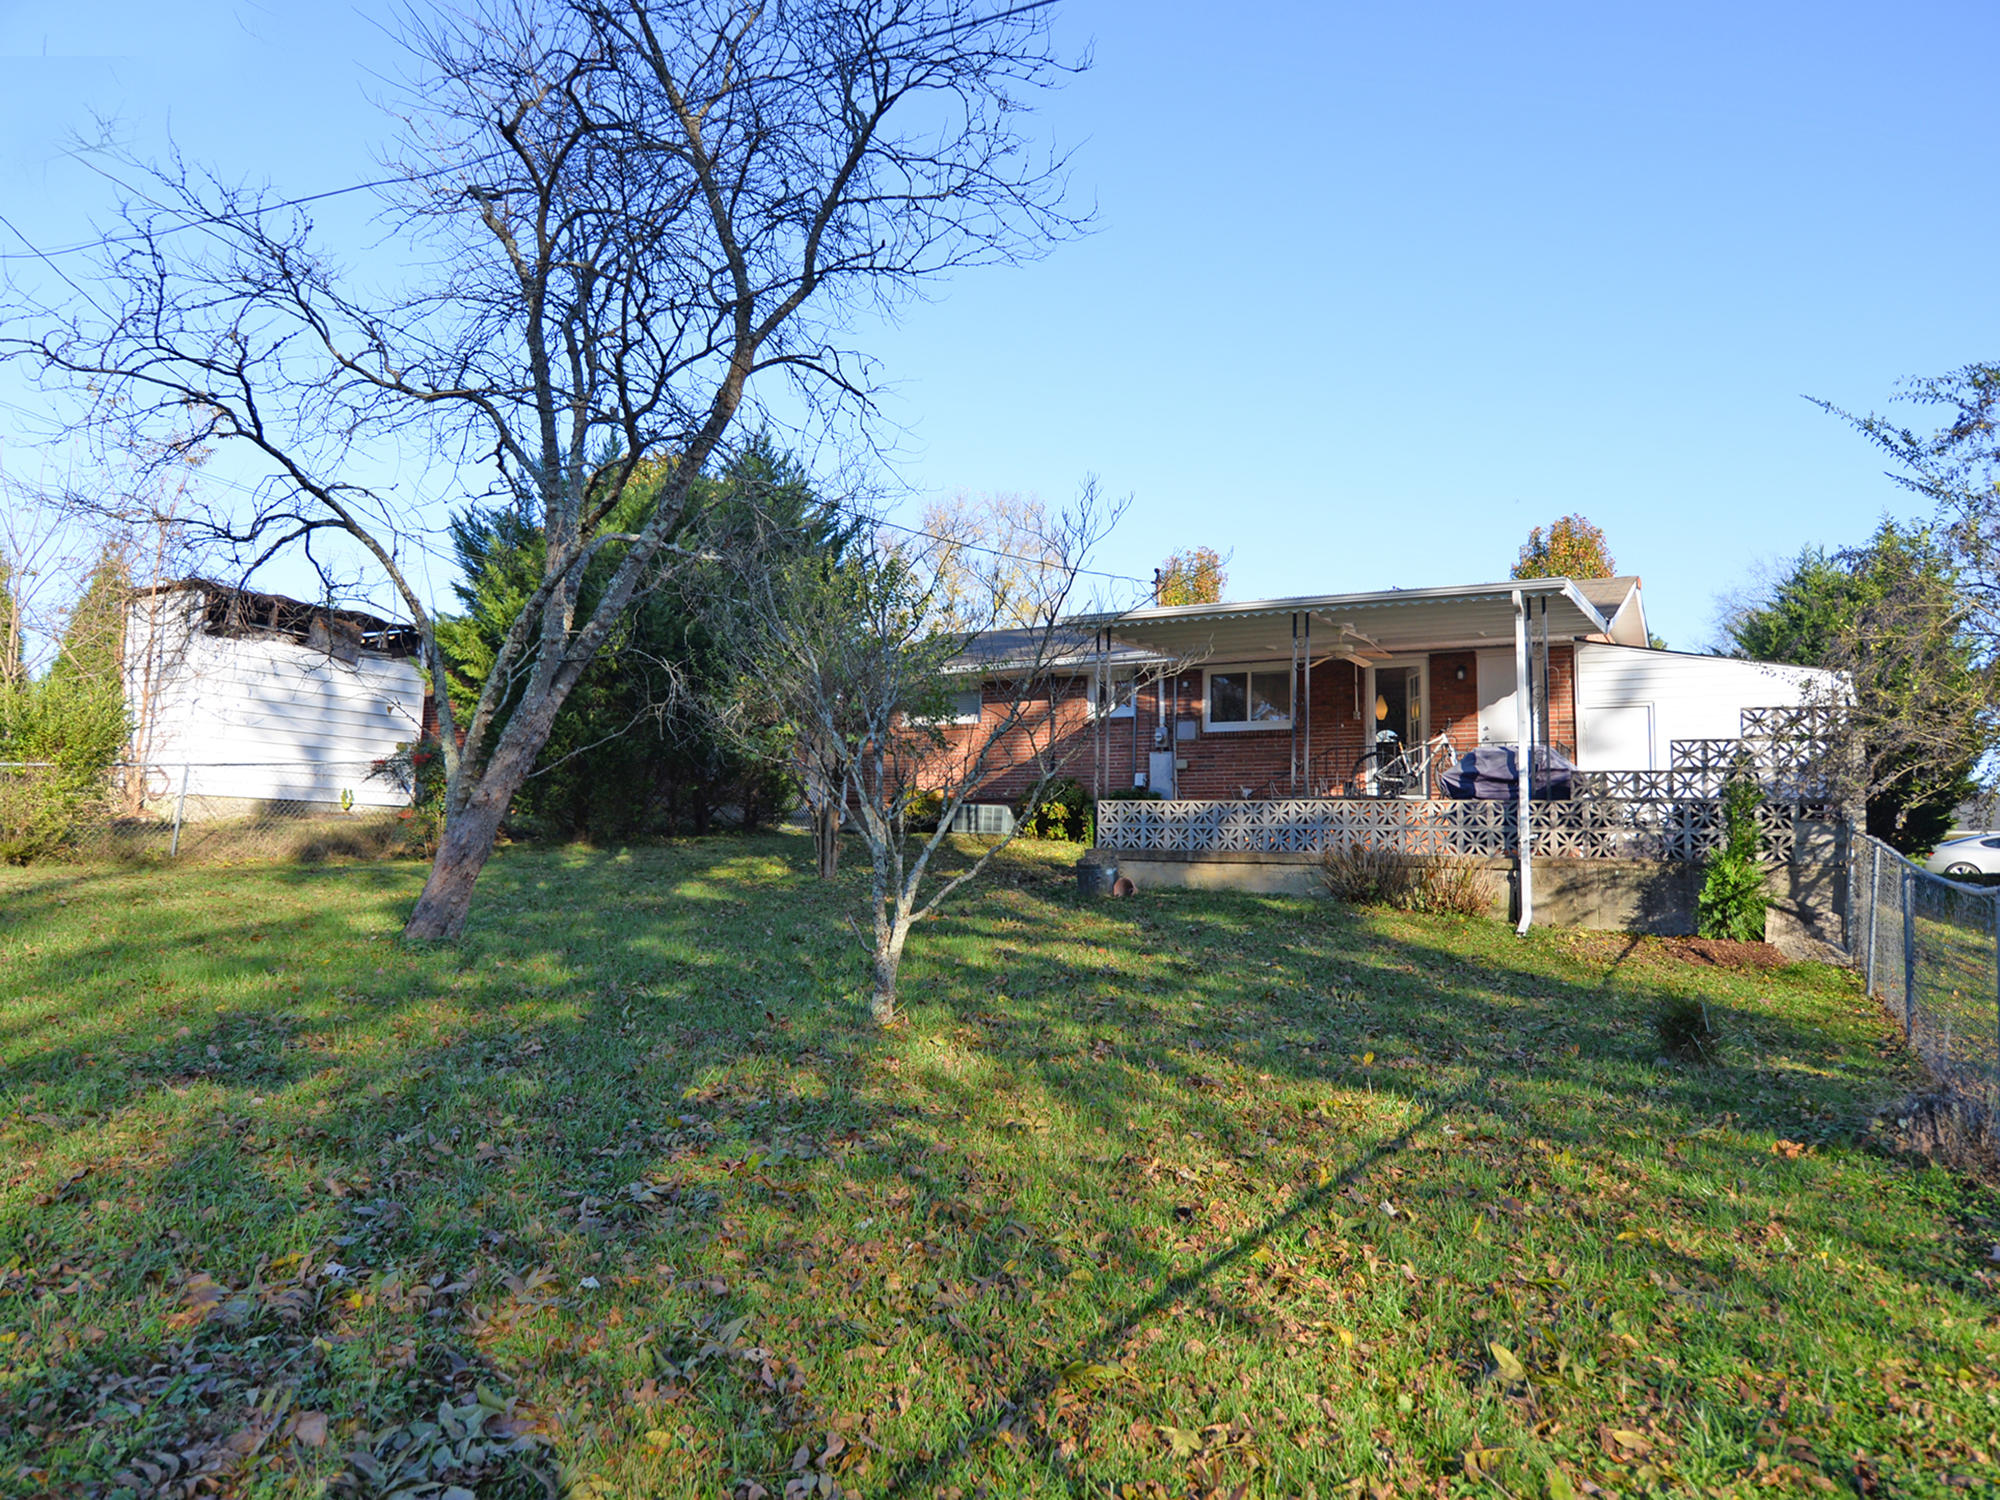 3307 Canary Ave, Knoxville, Tennessee 37920, 3 Bedrooms Bedrooms, ,1 BathroomBathrooms,Single Family,For Sale,Canary,1023997